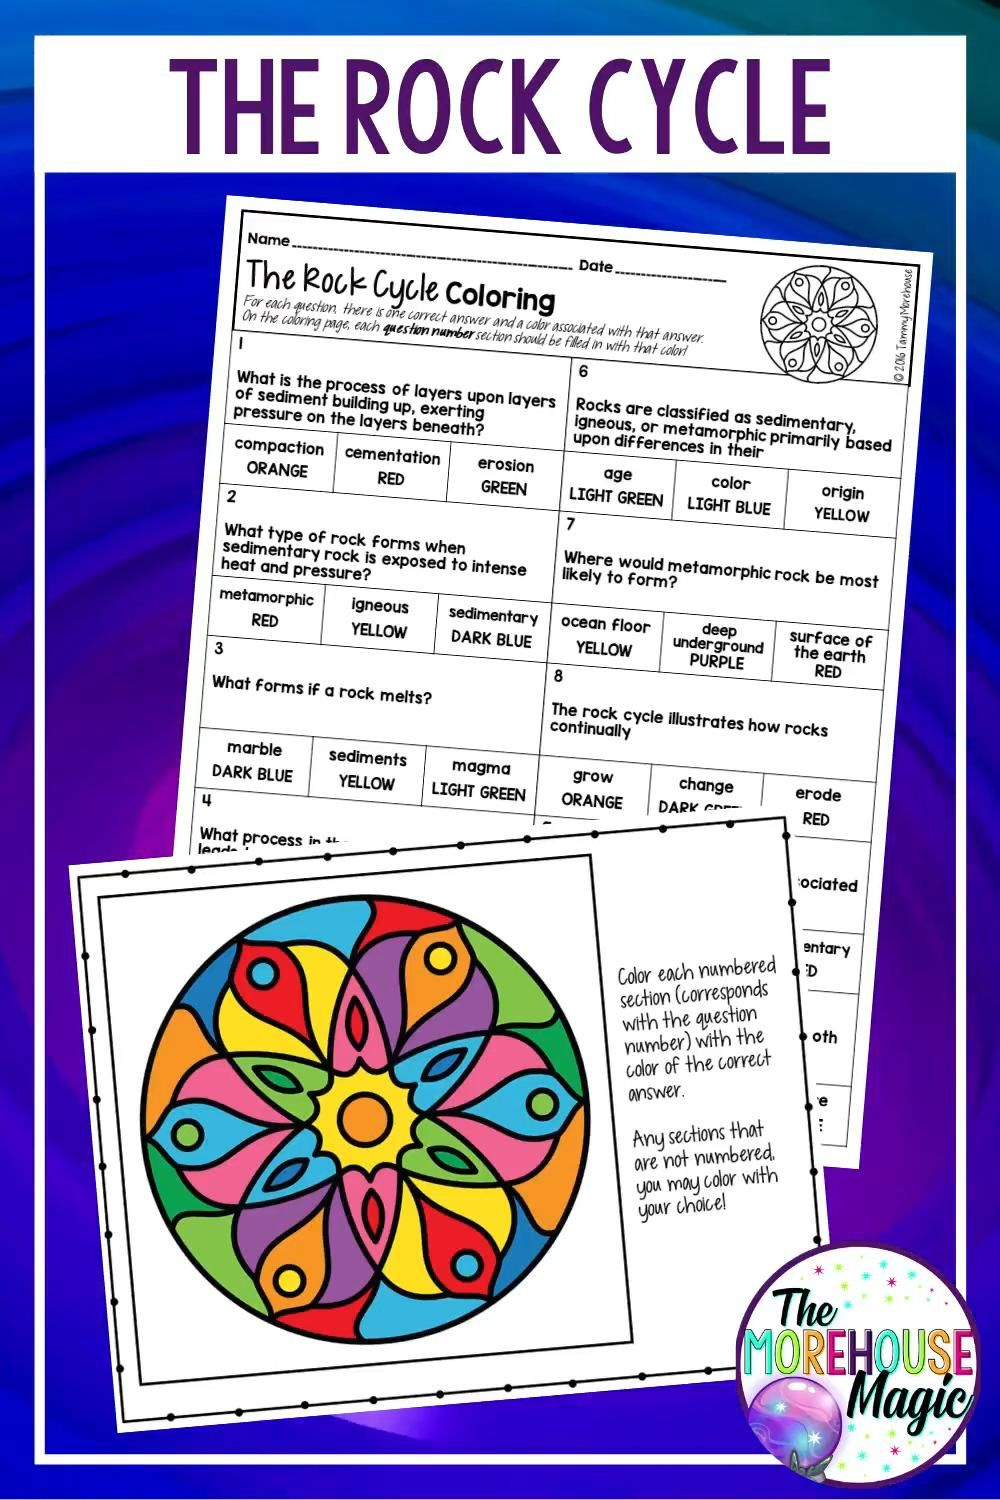 The Rock Cycle Science Color By Number Activity Video Rock Cycle Rock Cycle Activity Physical Science Middle School [ 1500 x 1000 Pixel ]